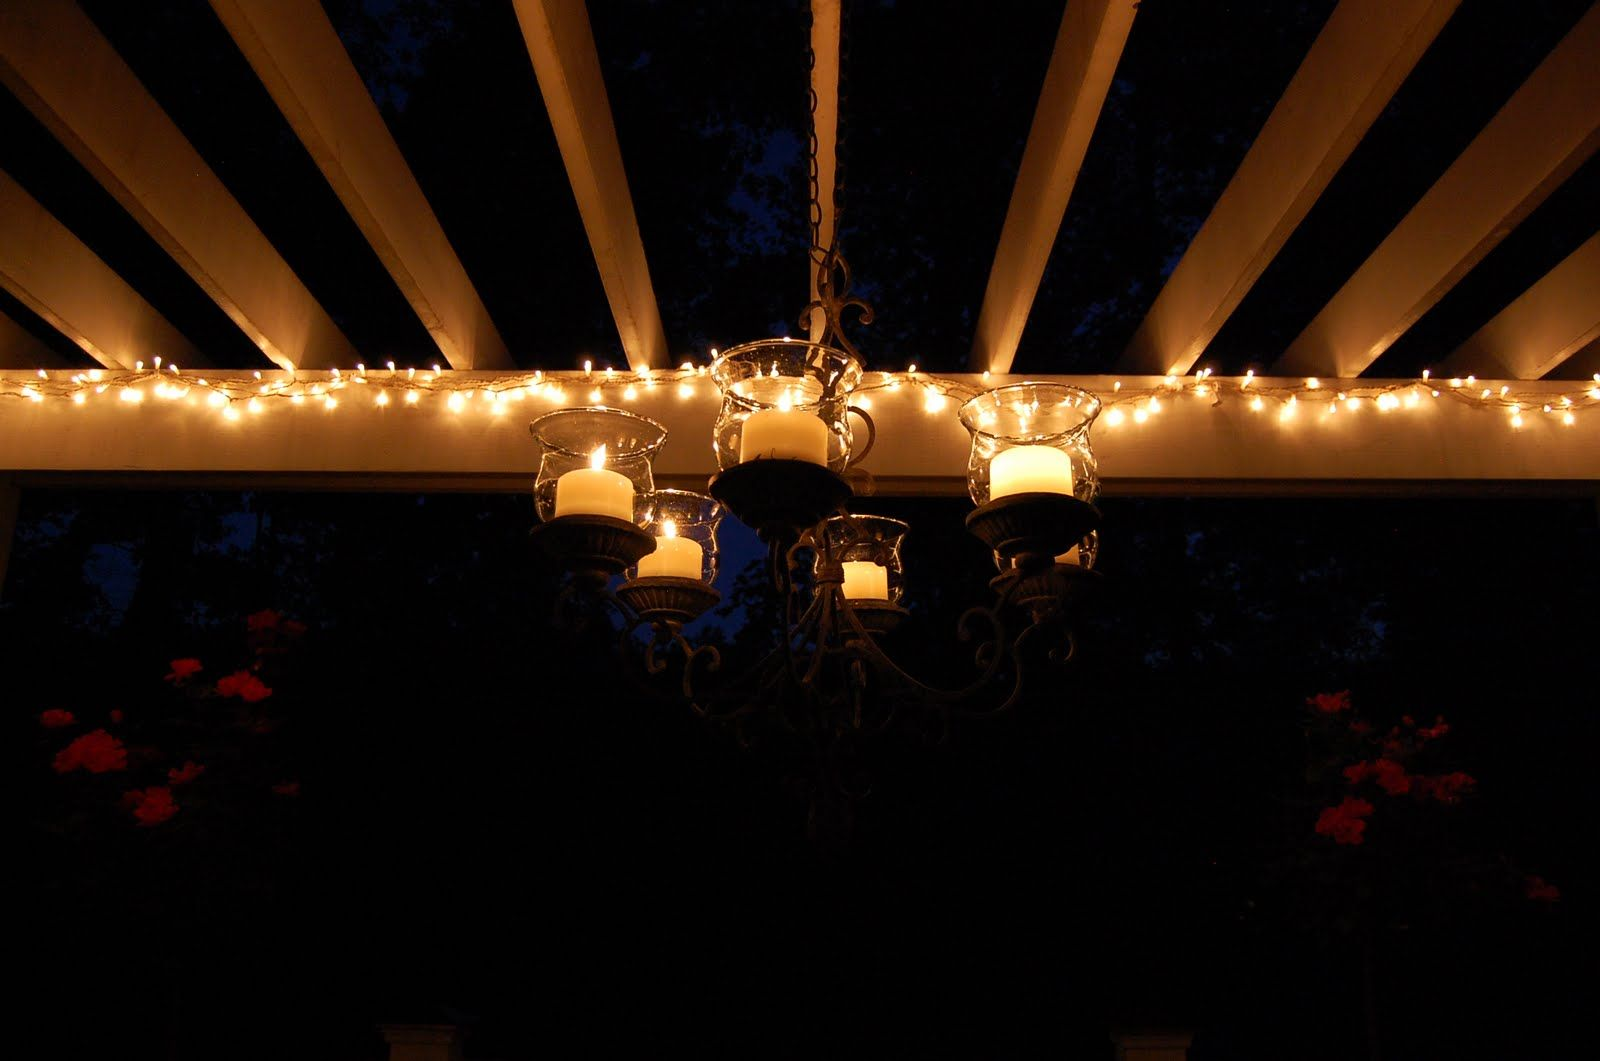 Appealing Outdoor Light With Hanging String : Romantic Caandle Outdoor Patio  Hanging String Lights Ideas